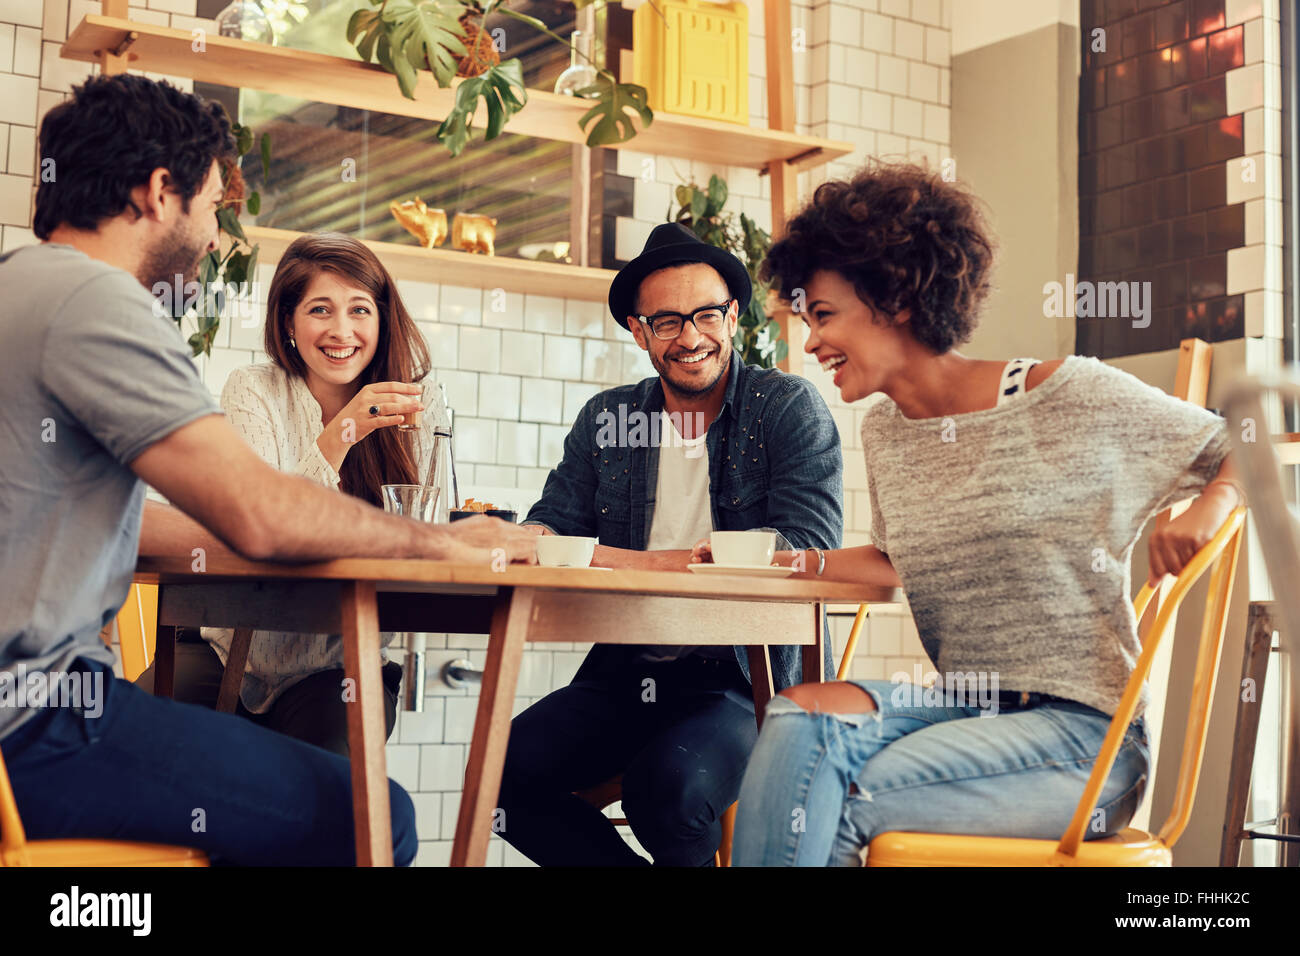 Portrait of cheerful young friends having fun while talking in a cafe. Group of young people meeting in a cafe. - Stock Image